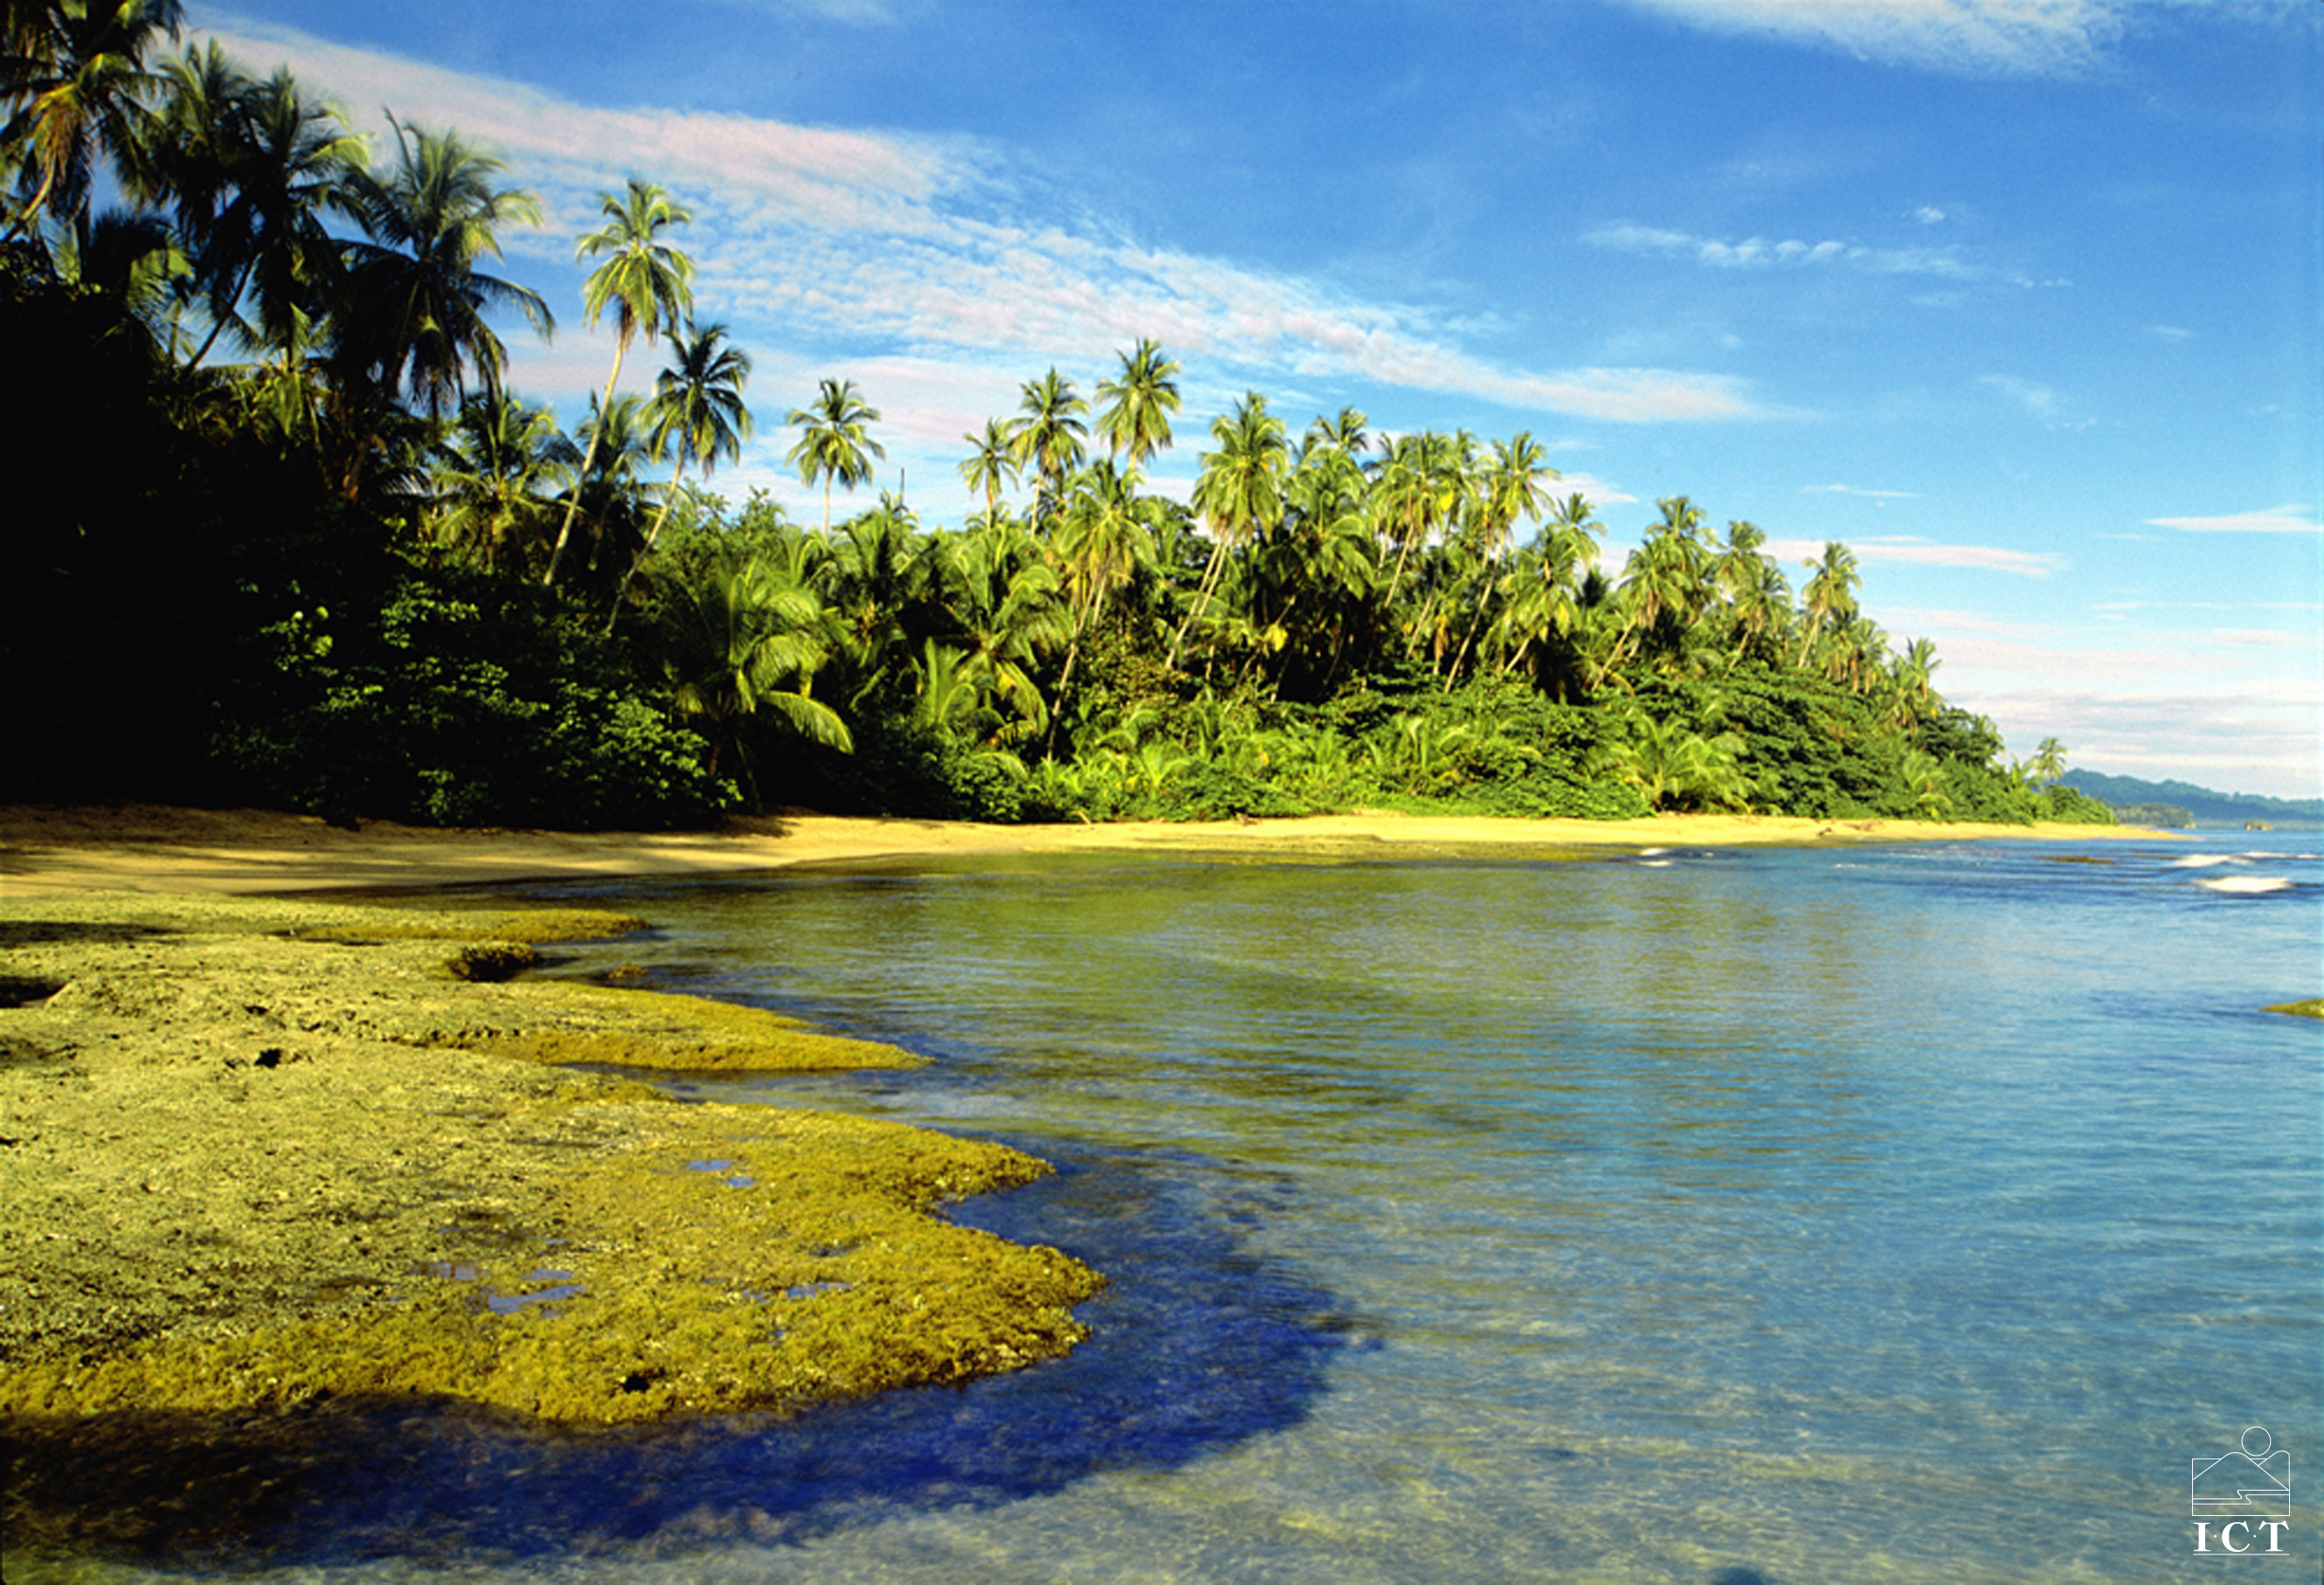 Cahuita National Park